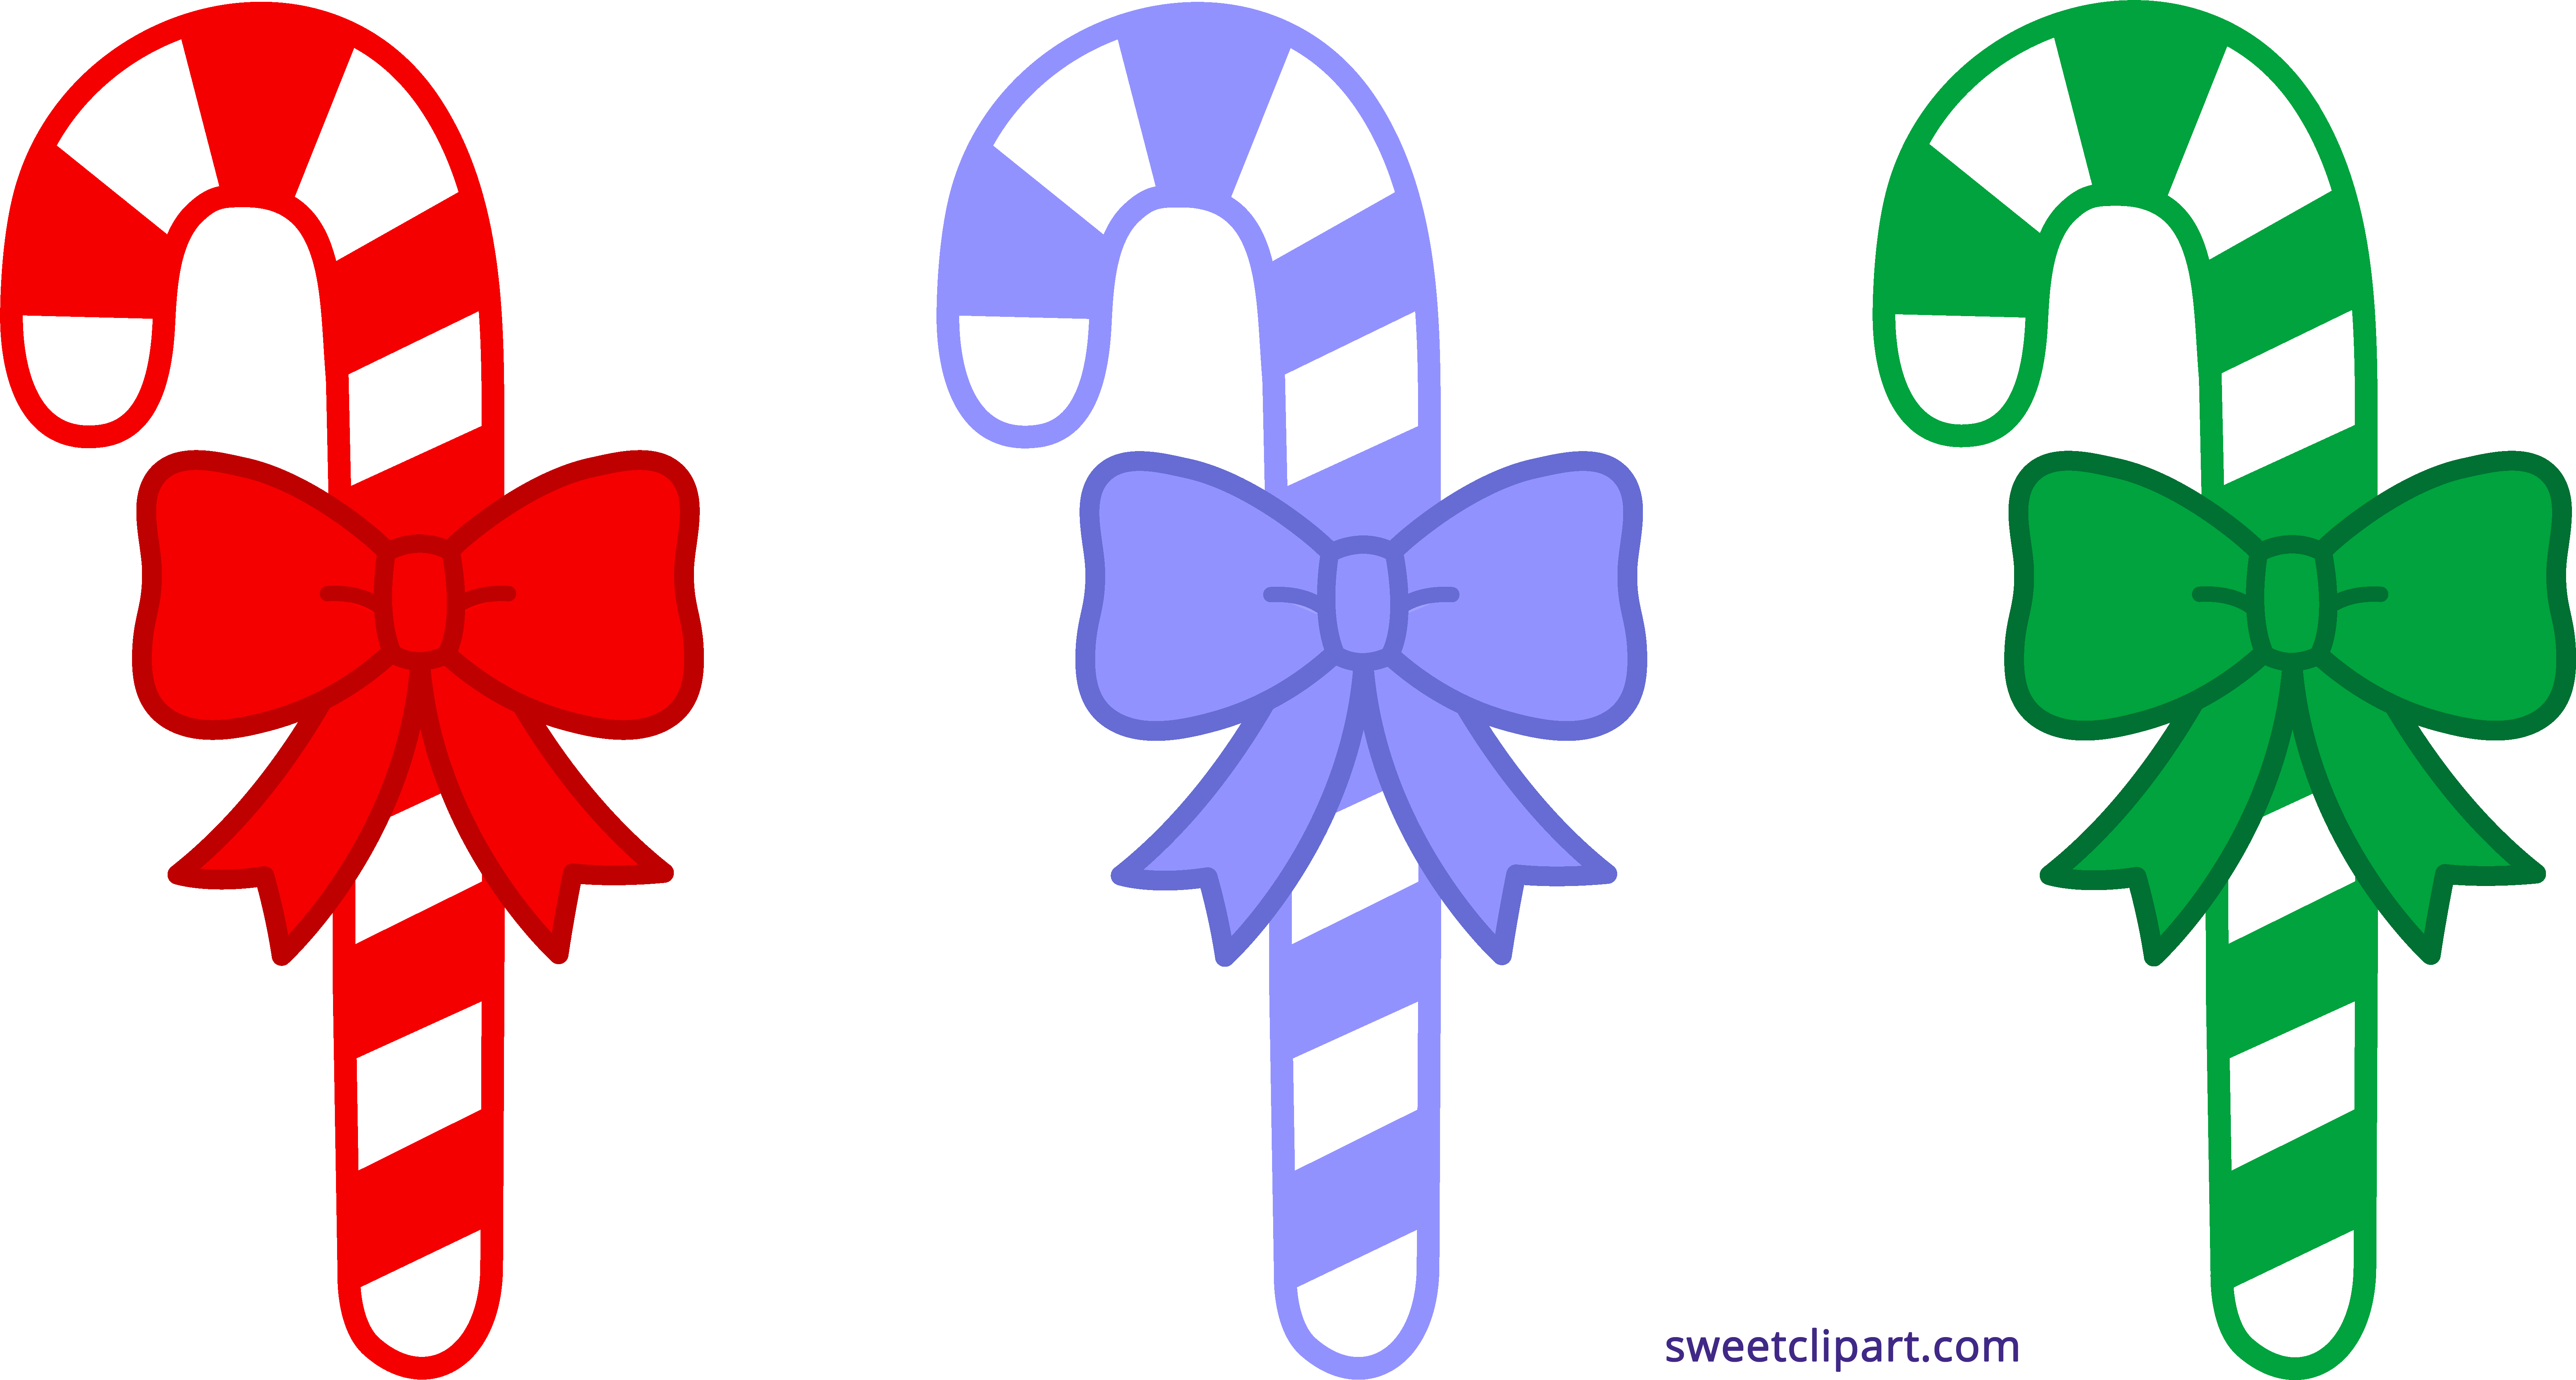 Sports clipart christmas. Three candy canes sweet